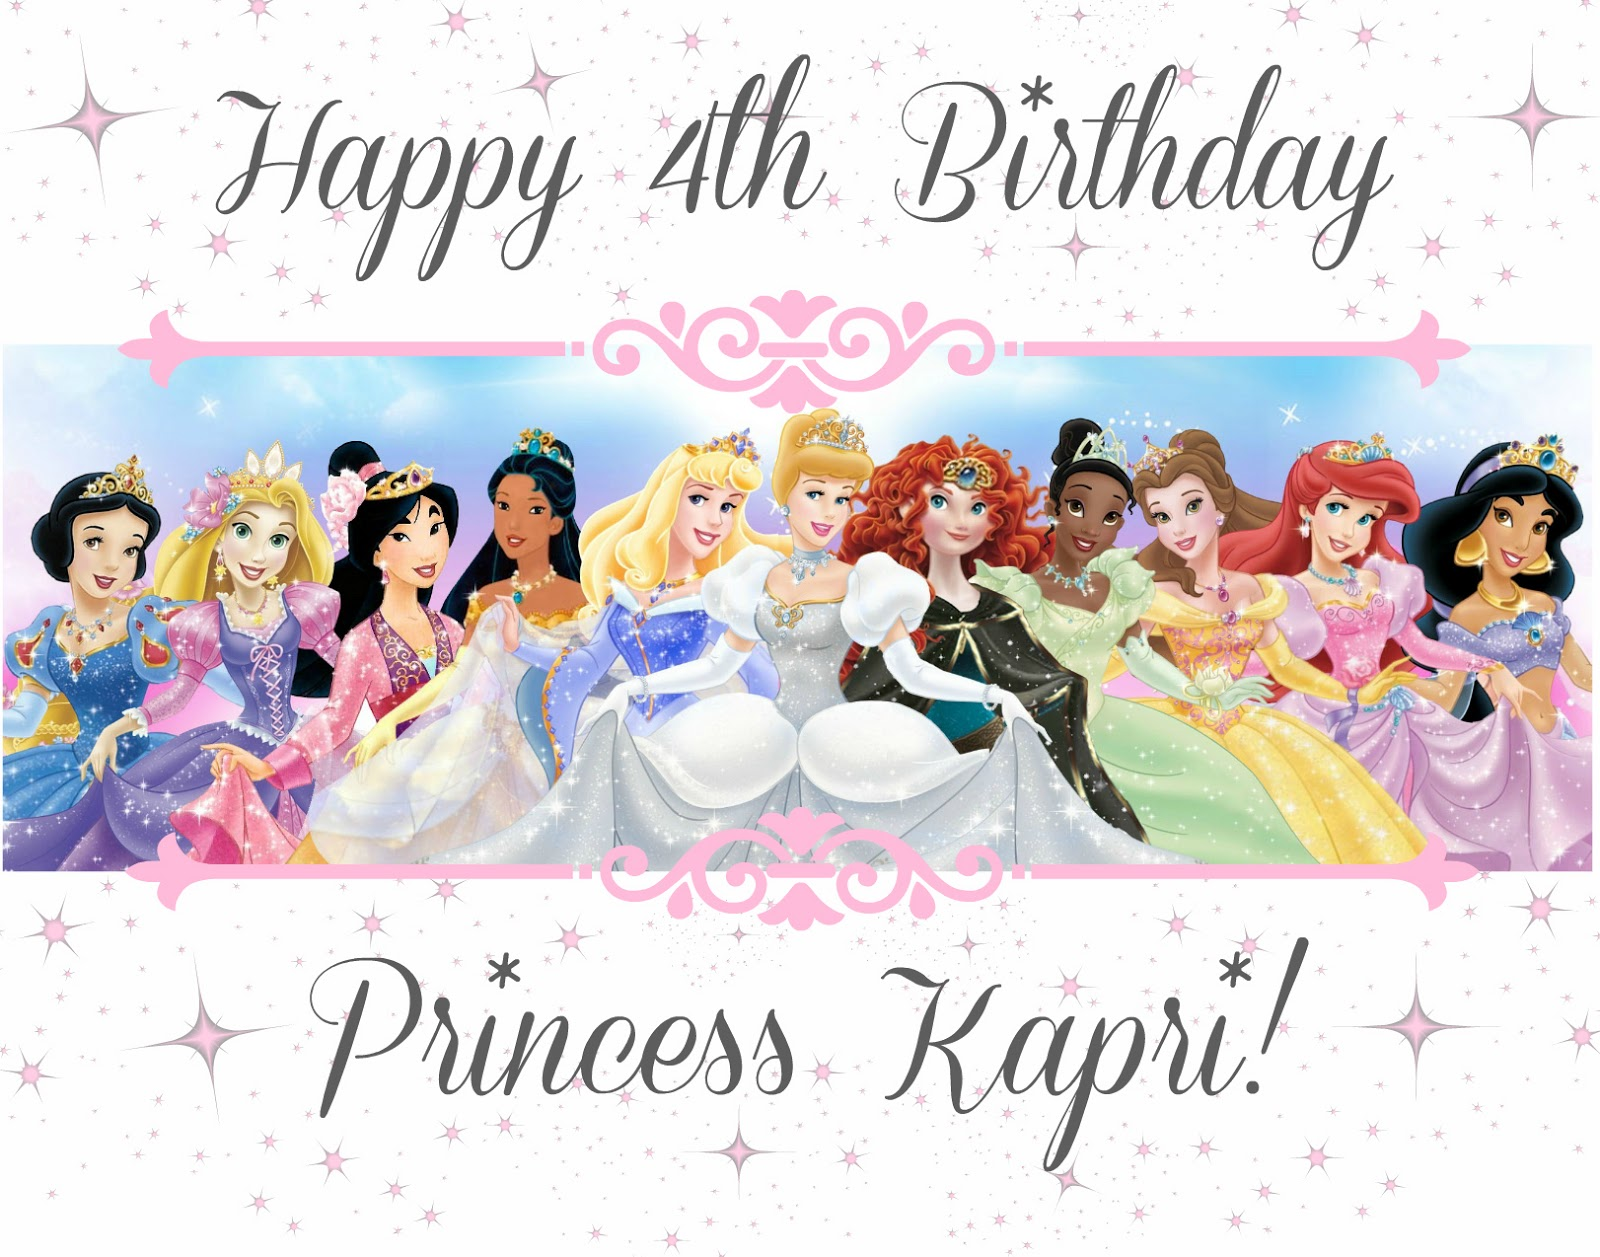 Mejia Mamma Happy 4th Birthday Princess Kapri